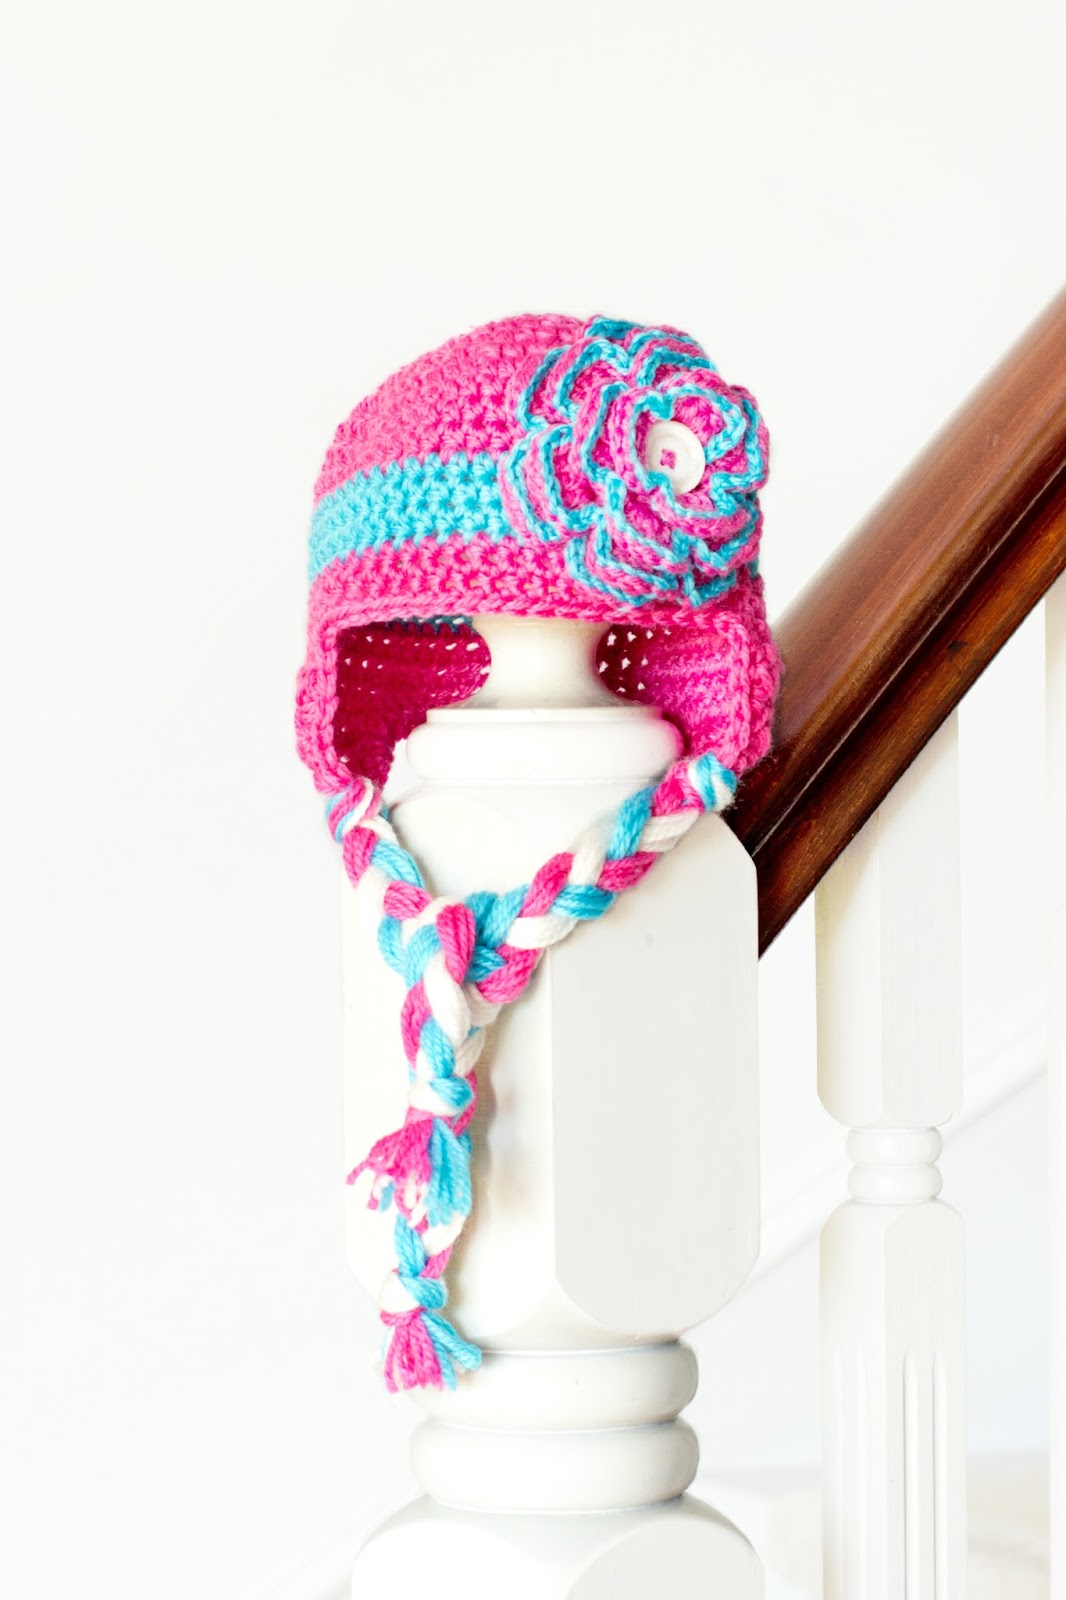 Free Crochet Patterns For Earflap Hats : Hopeful Honey Craft, Crochet, Create: 10 Free Adorable ...